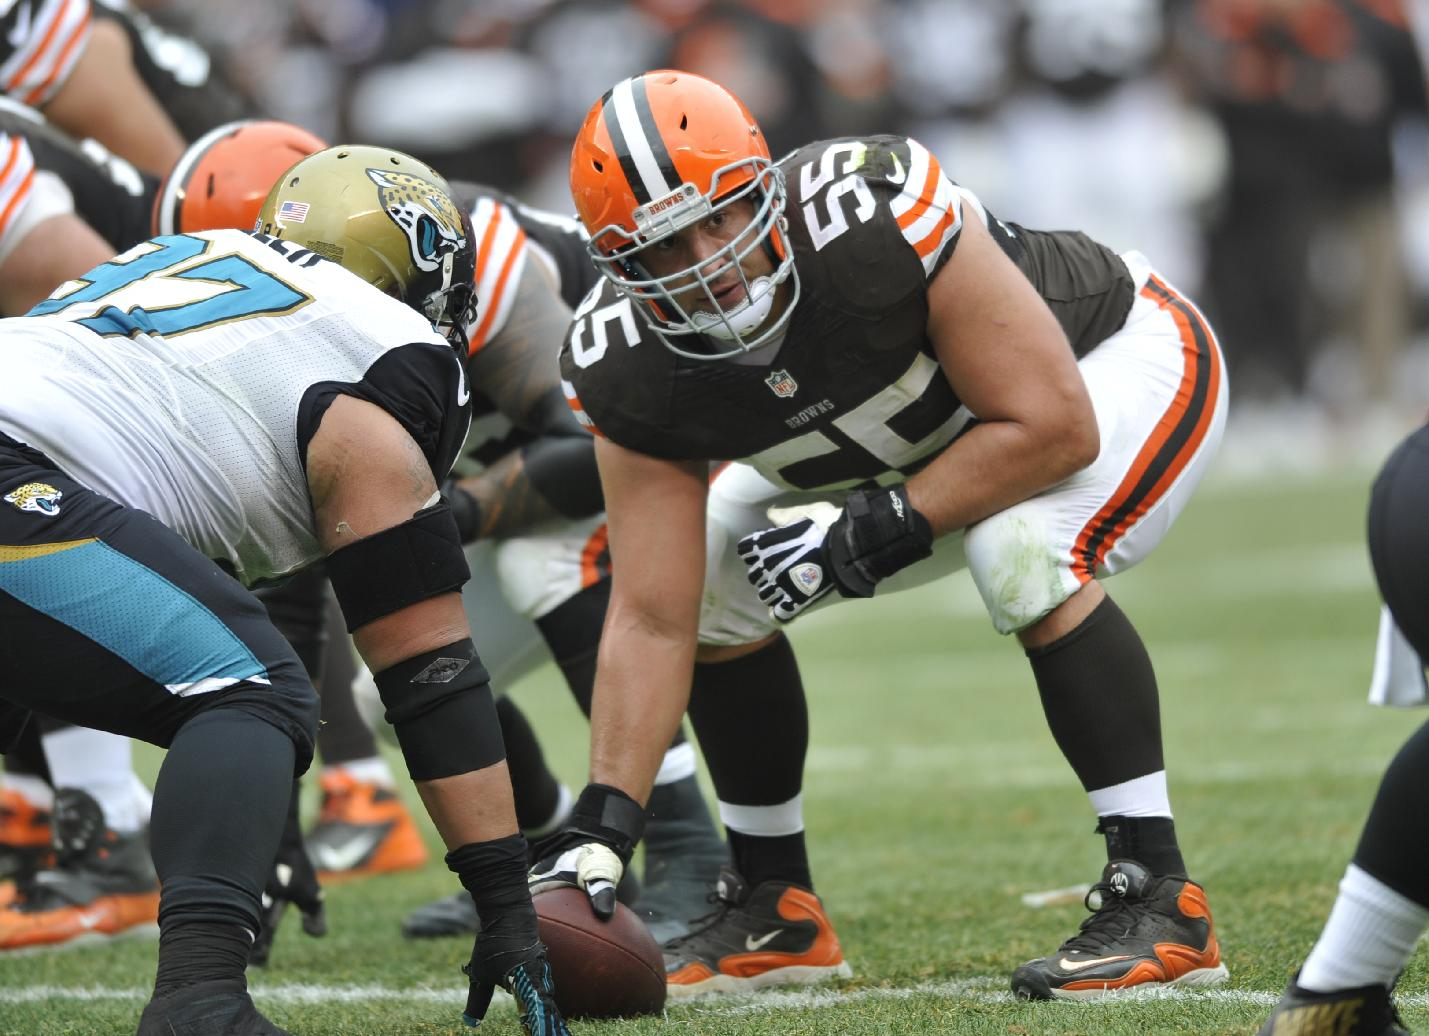 This Dec. 1, 2013 file photo shows Cleveland Browns center Alex Mack (55) in action during an NFL football game against the Jacksonville Jaguars, in Cleveland. Browns Pro Bowl center Alex Mack's football future could be decided in the next few days _ or hours. The Jacksonville Jaguars are expected to sign Mack to a contract offer sheet on Friday, April 11, 2014. Once the paperwork is filed, the Browns will have five days to match. Cleveland secured that right after placing a $10 million transition tag on Mack before free agency opened